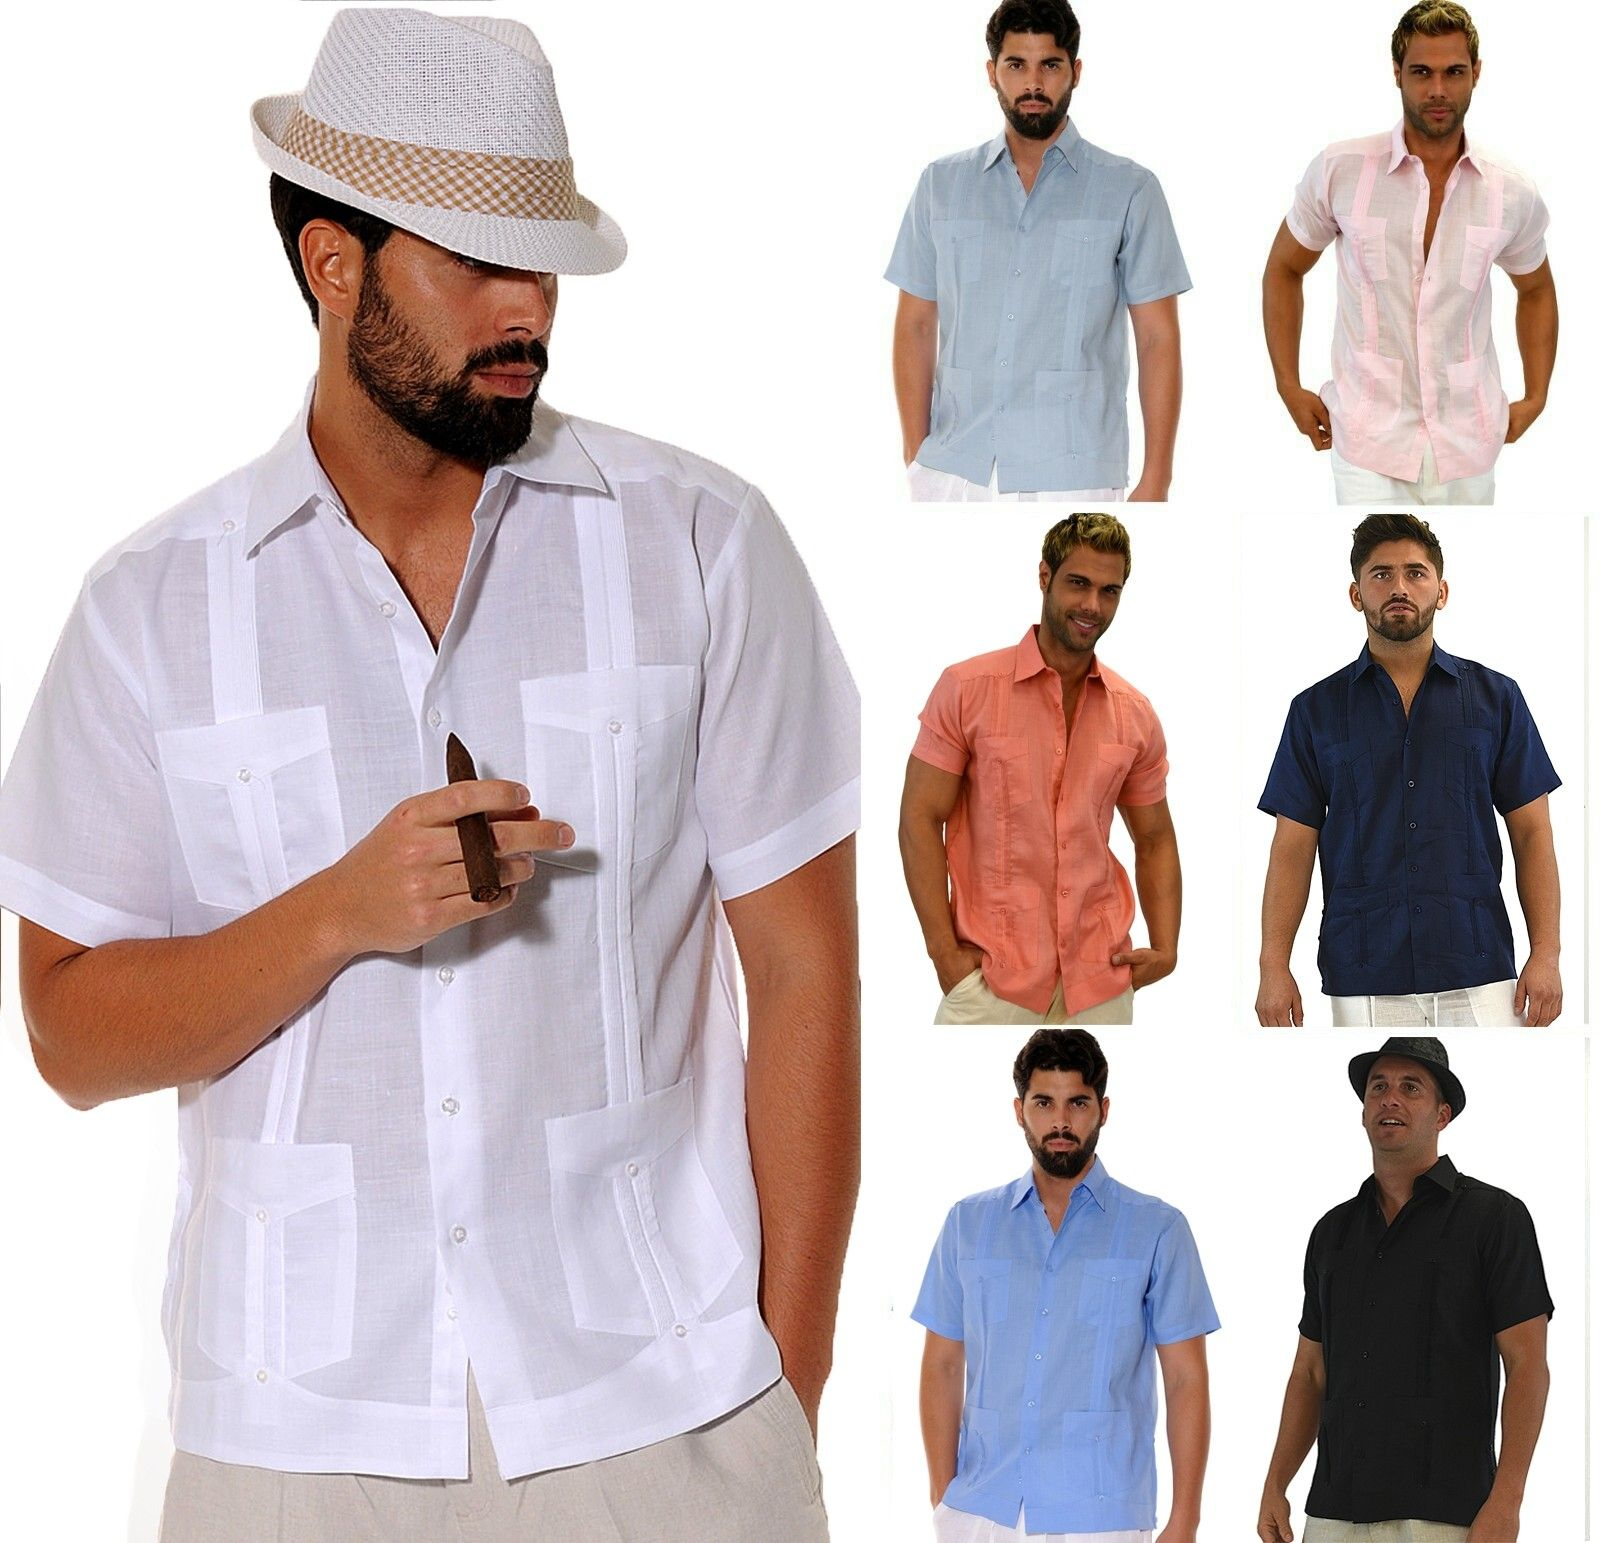 Ls499 Bohio 100 Linen Guayabera Chacavana Classic Traditional 4 Pocket Short Sleeve Shirt In 8 In 2020 Casual Linen Pants Linen Drawstring Pants Linen Shirt Men